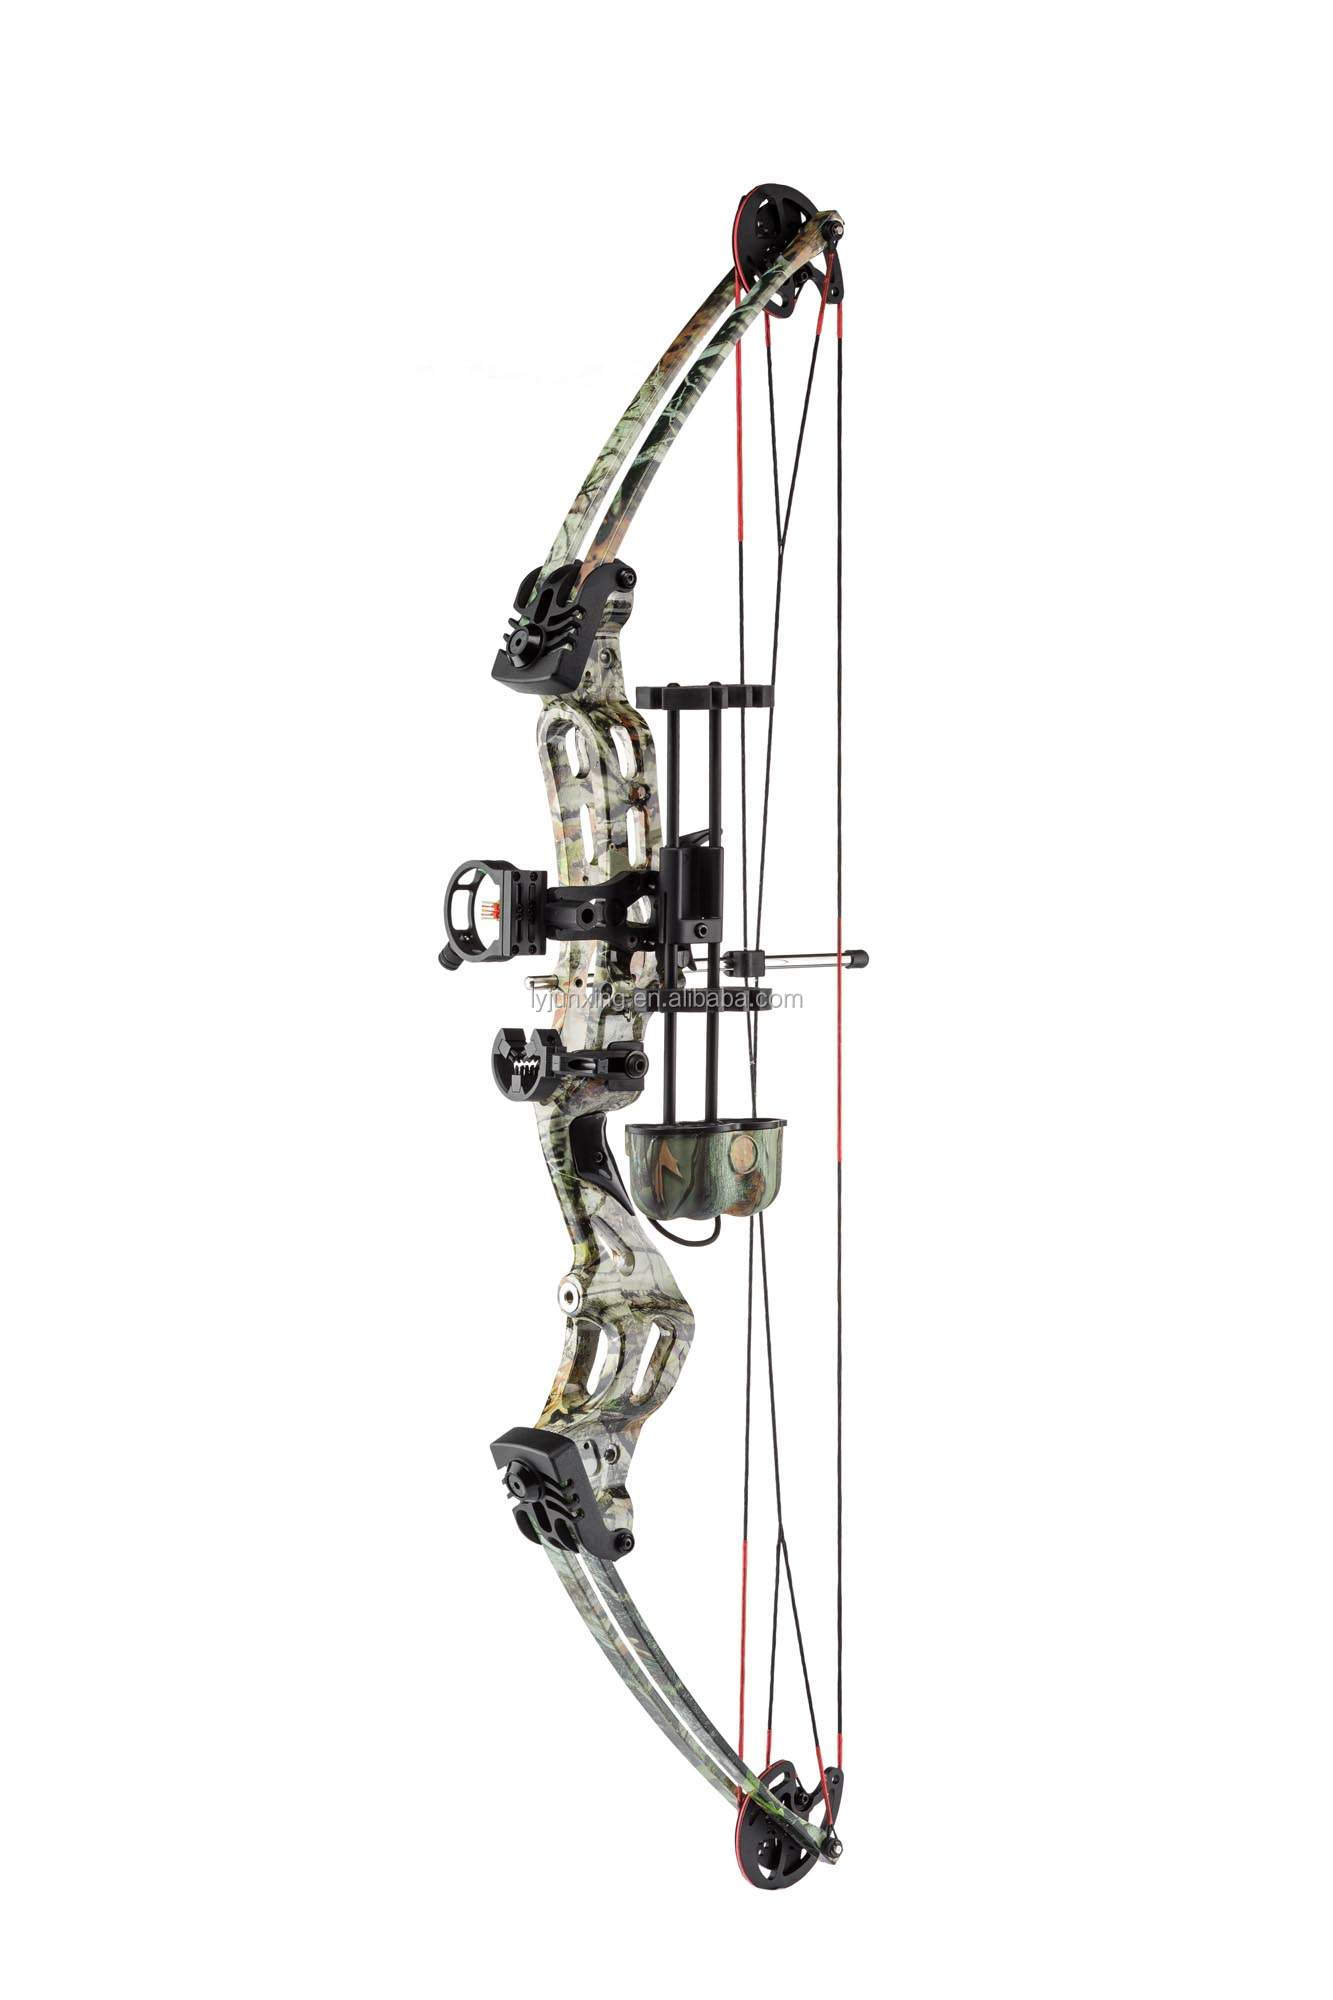 40 50lbs 50 60lbs Hunting Compound Bow Lh Amp Rh Handed